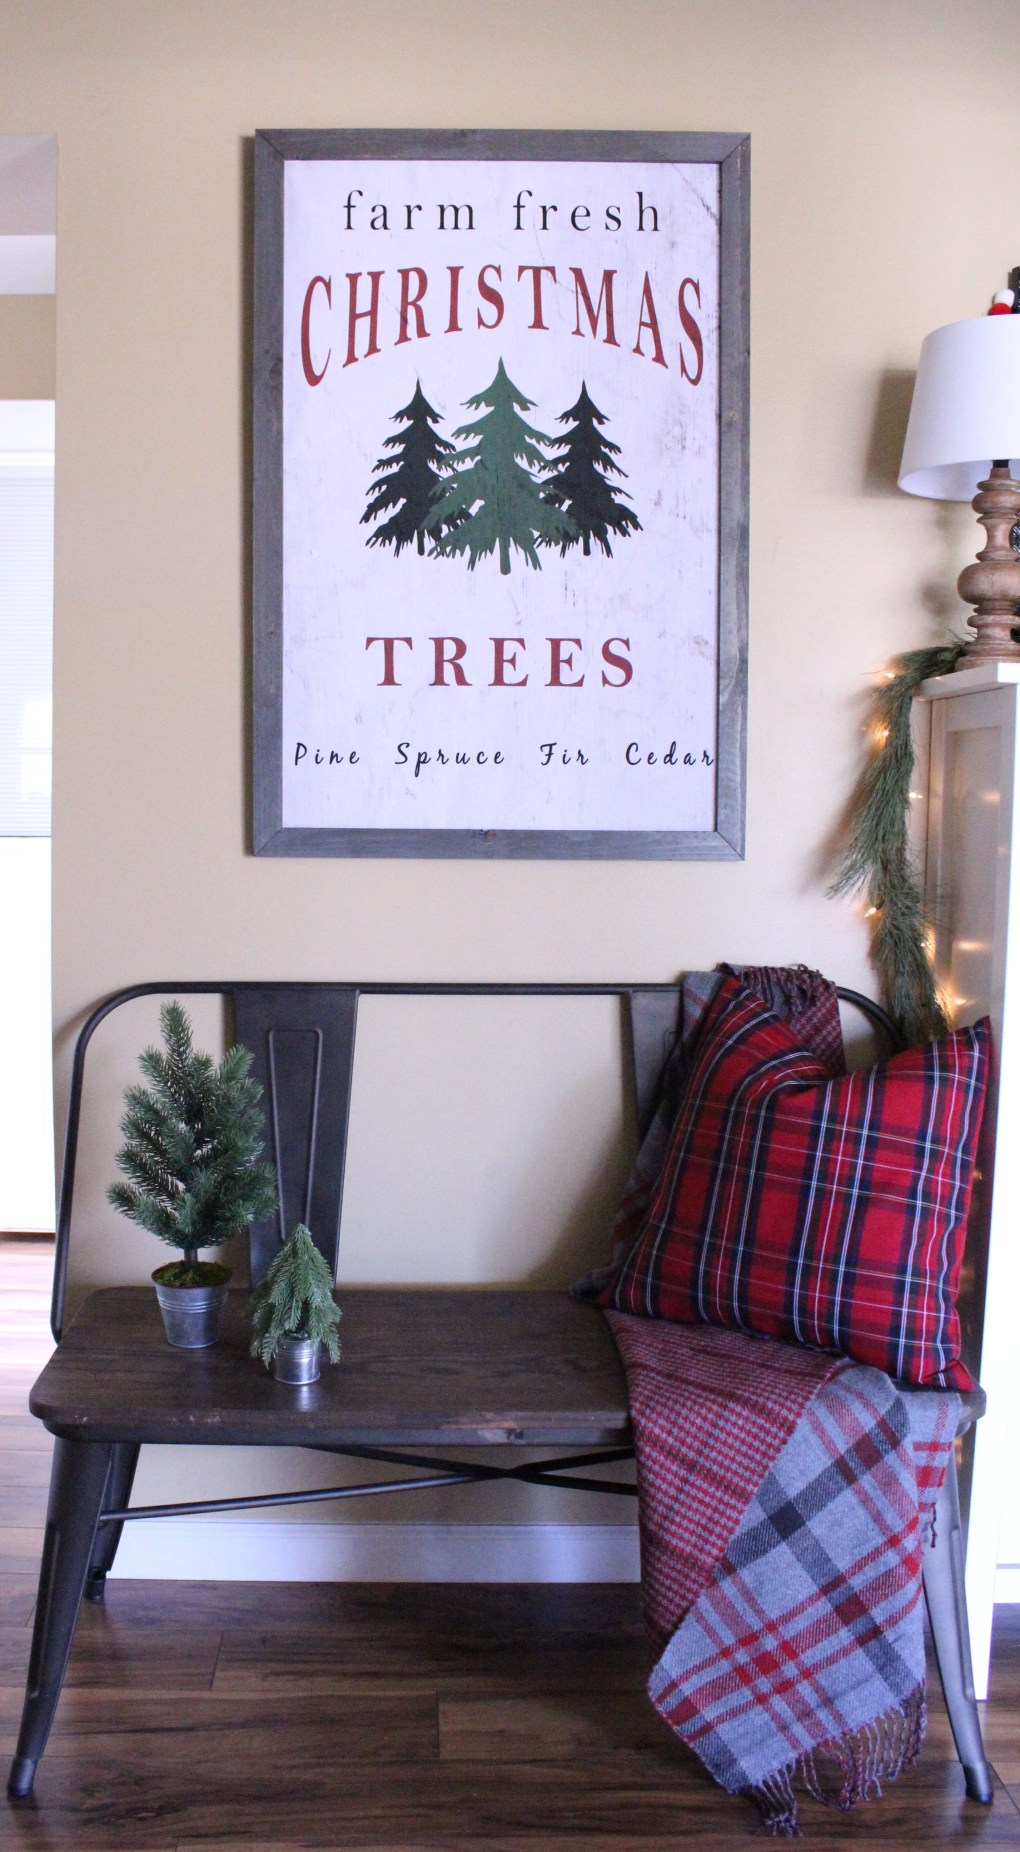 Farm Fresh Christmas Trees Sign in Entryway